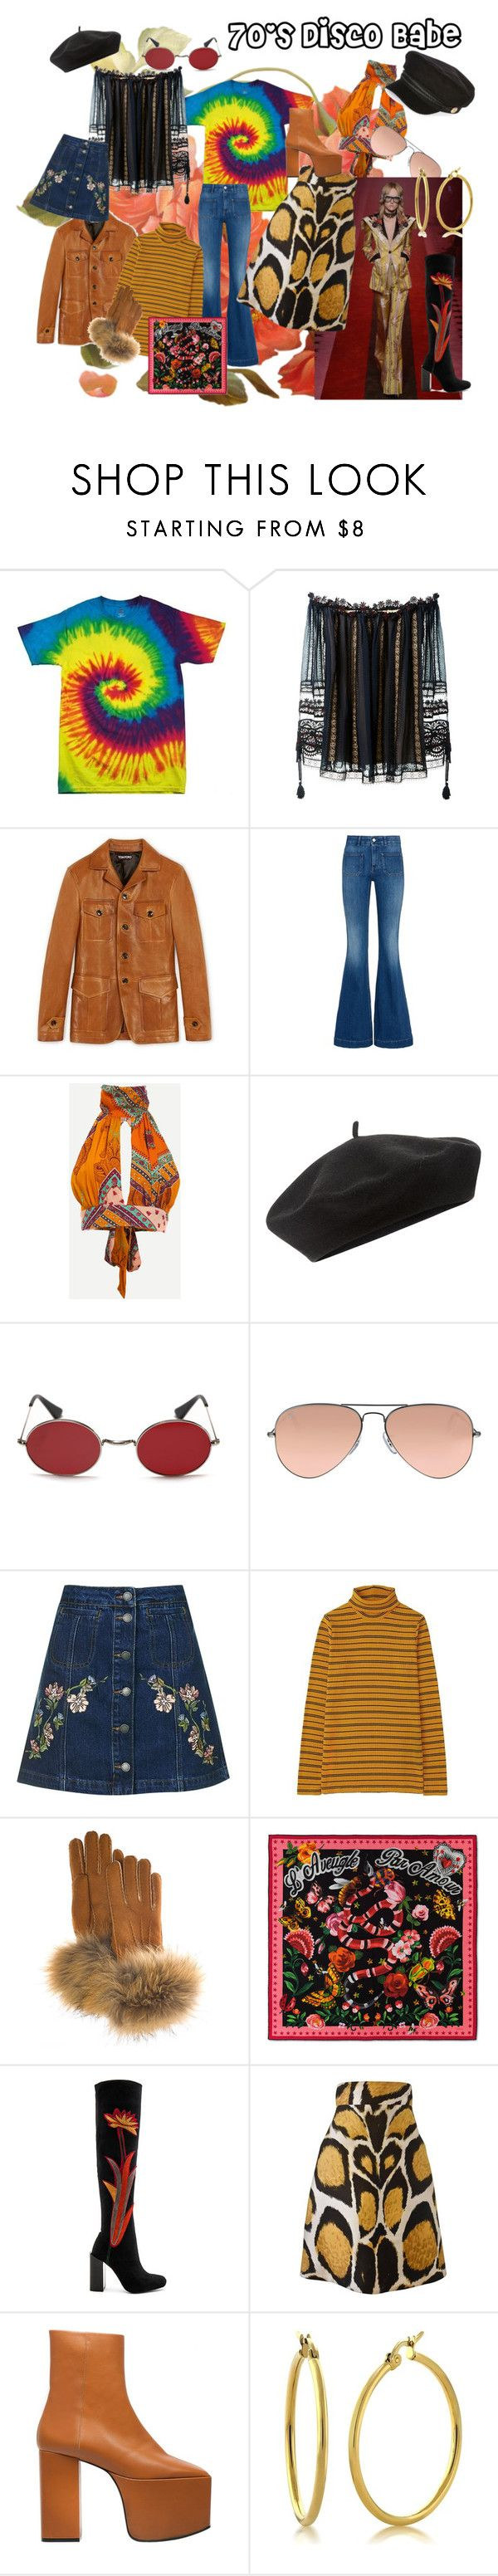 """""""S/S 2017 Trends"""" by bella1924l ❤ liked on Polyvore featuring Chloé, STELLA McCARTNEY, Accessorize, Murdock London, Ray-Ban, Topshop, Uniqlo, FRR, Gucci and Jeffrey Campbell"""